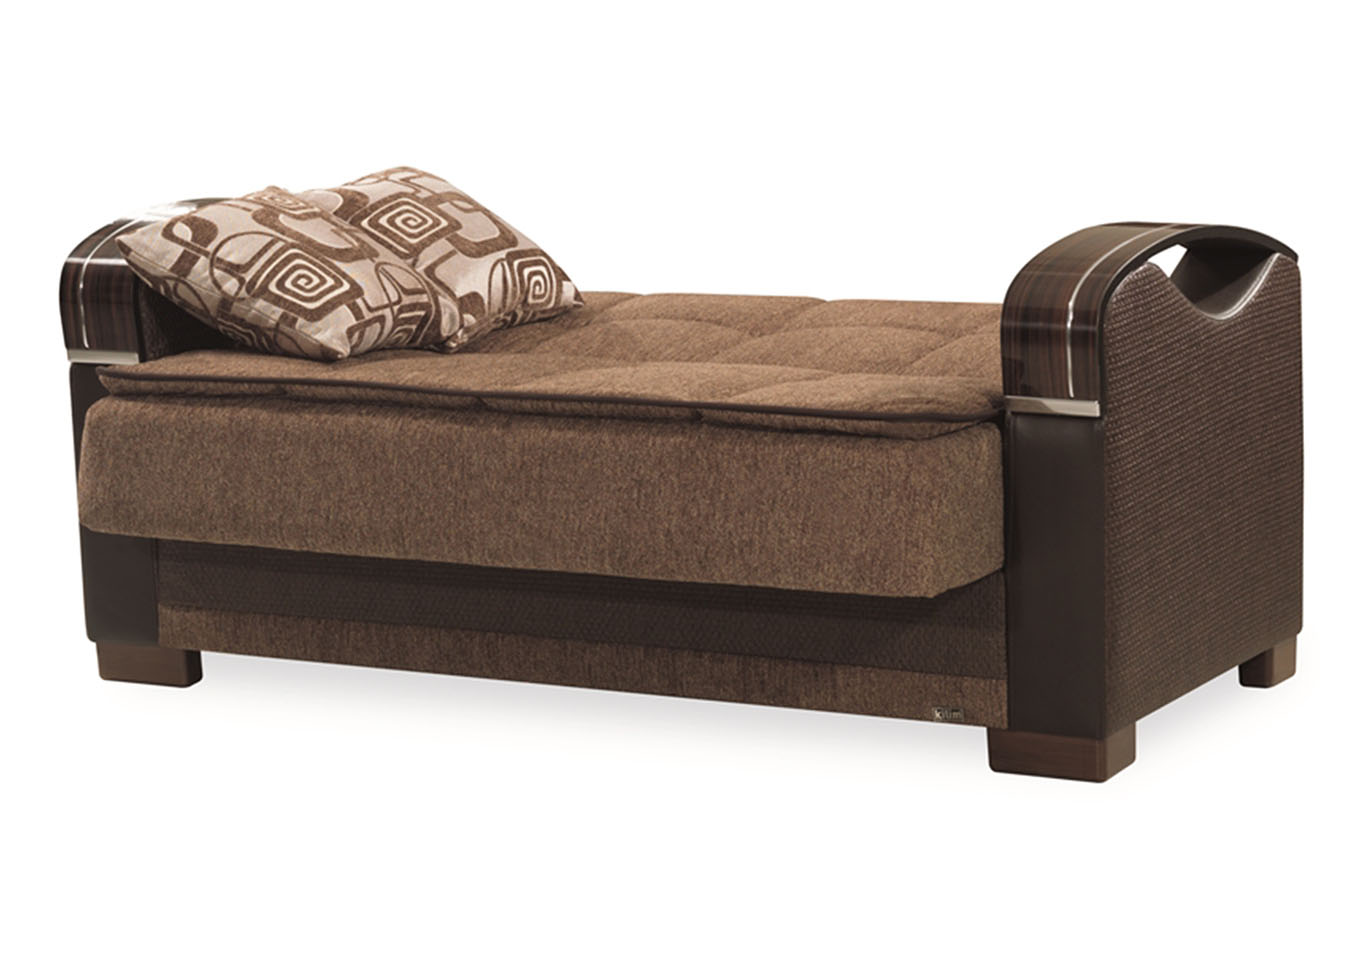 Bristol Brown Chenille Love Seat,CasaMode Functional Furniture